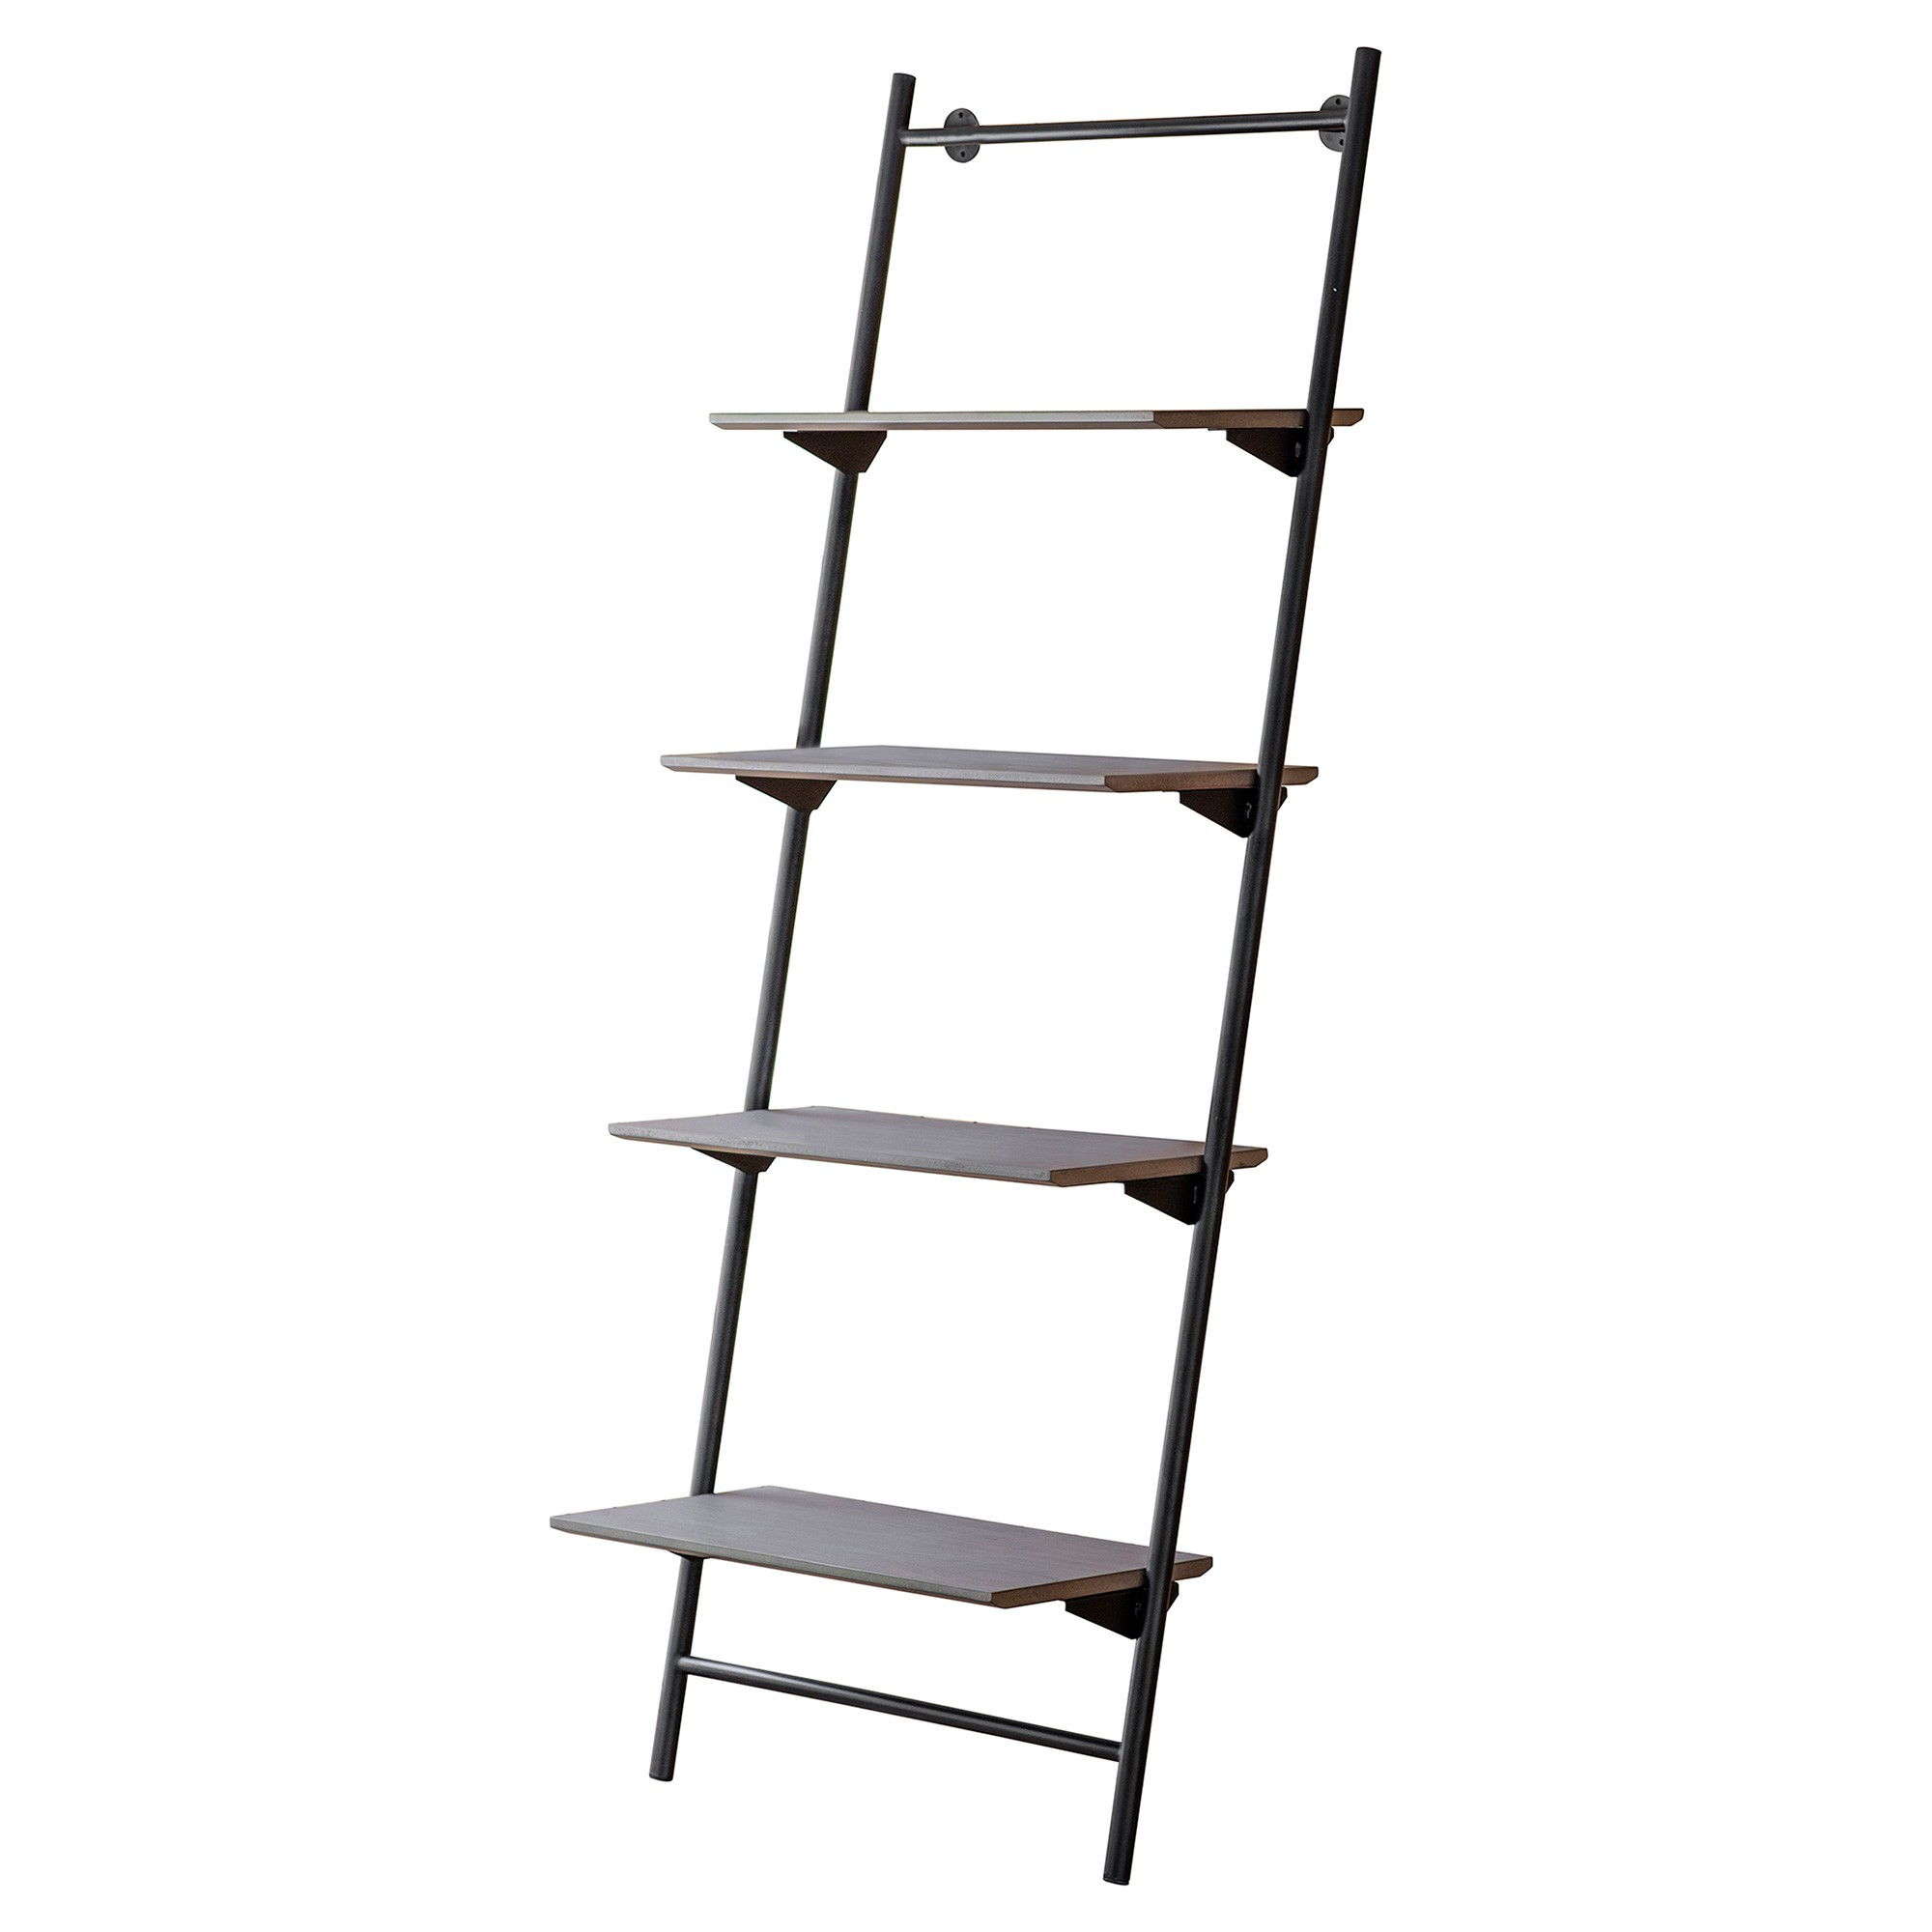 Calbex Ladder Display Shelf